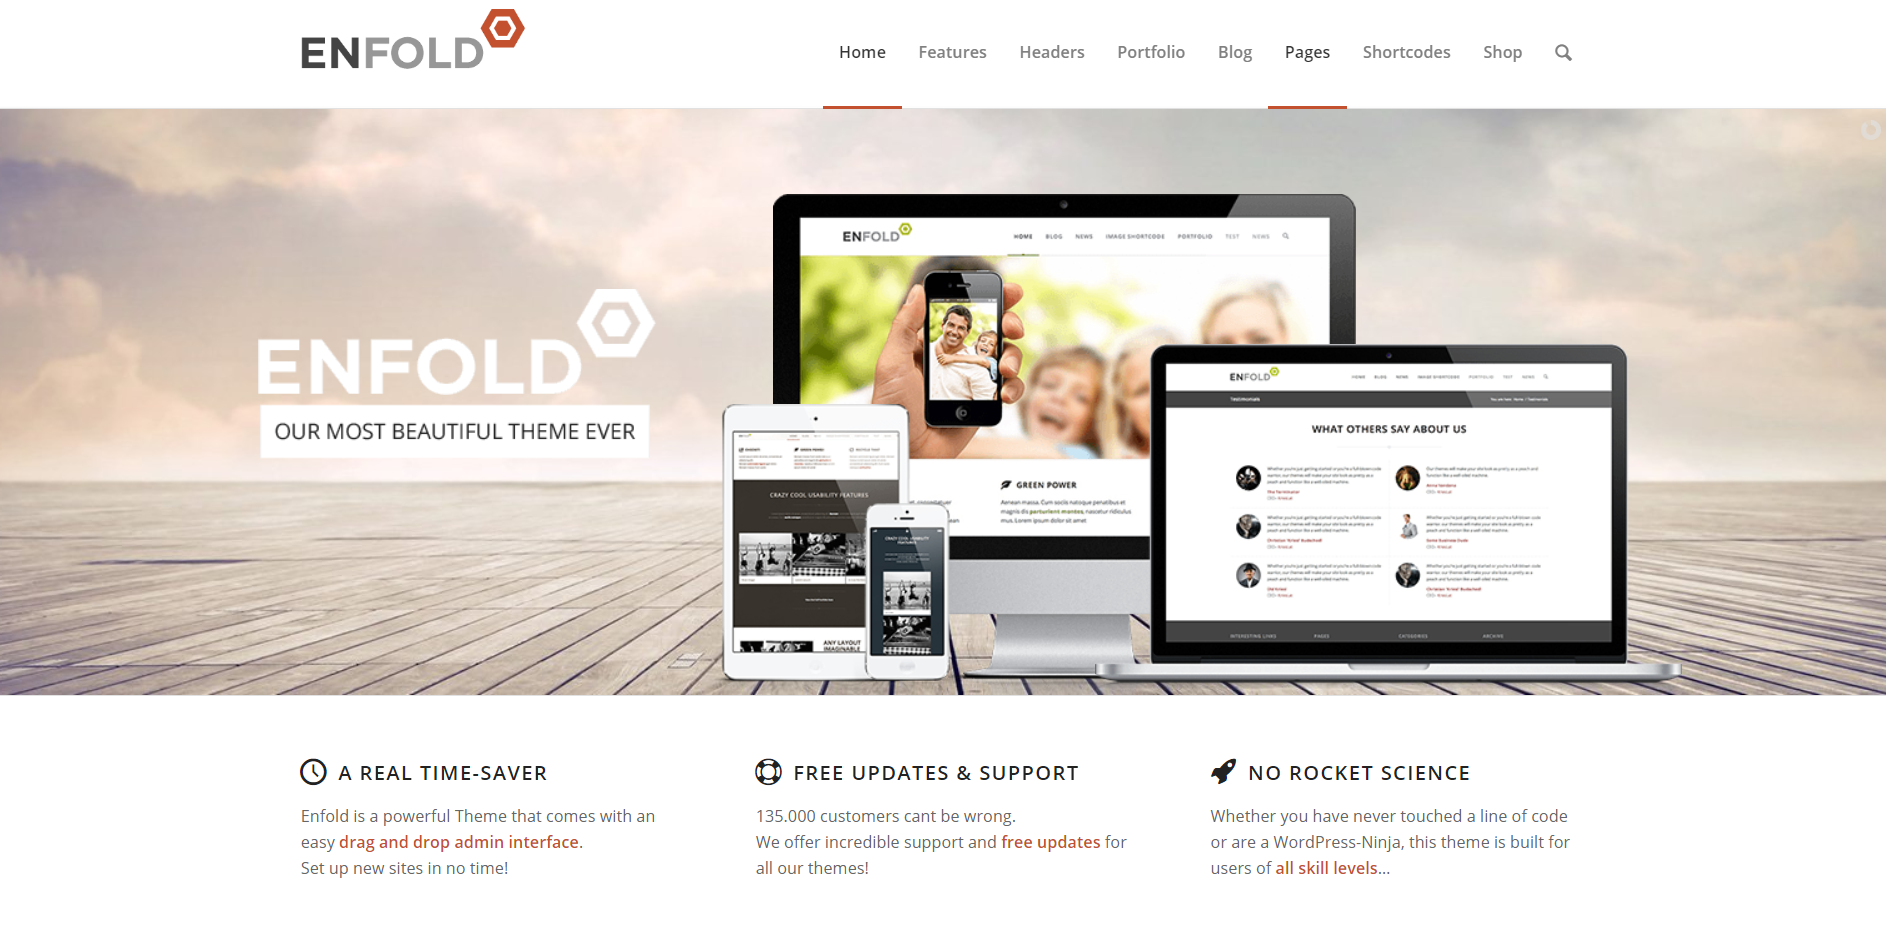 enfold wordpress thema, enfold wordpress theme, enfold theme